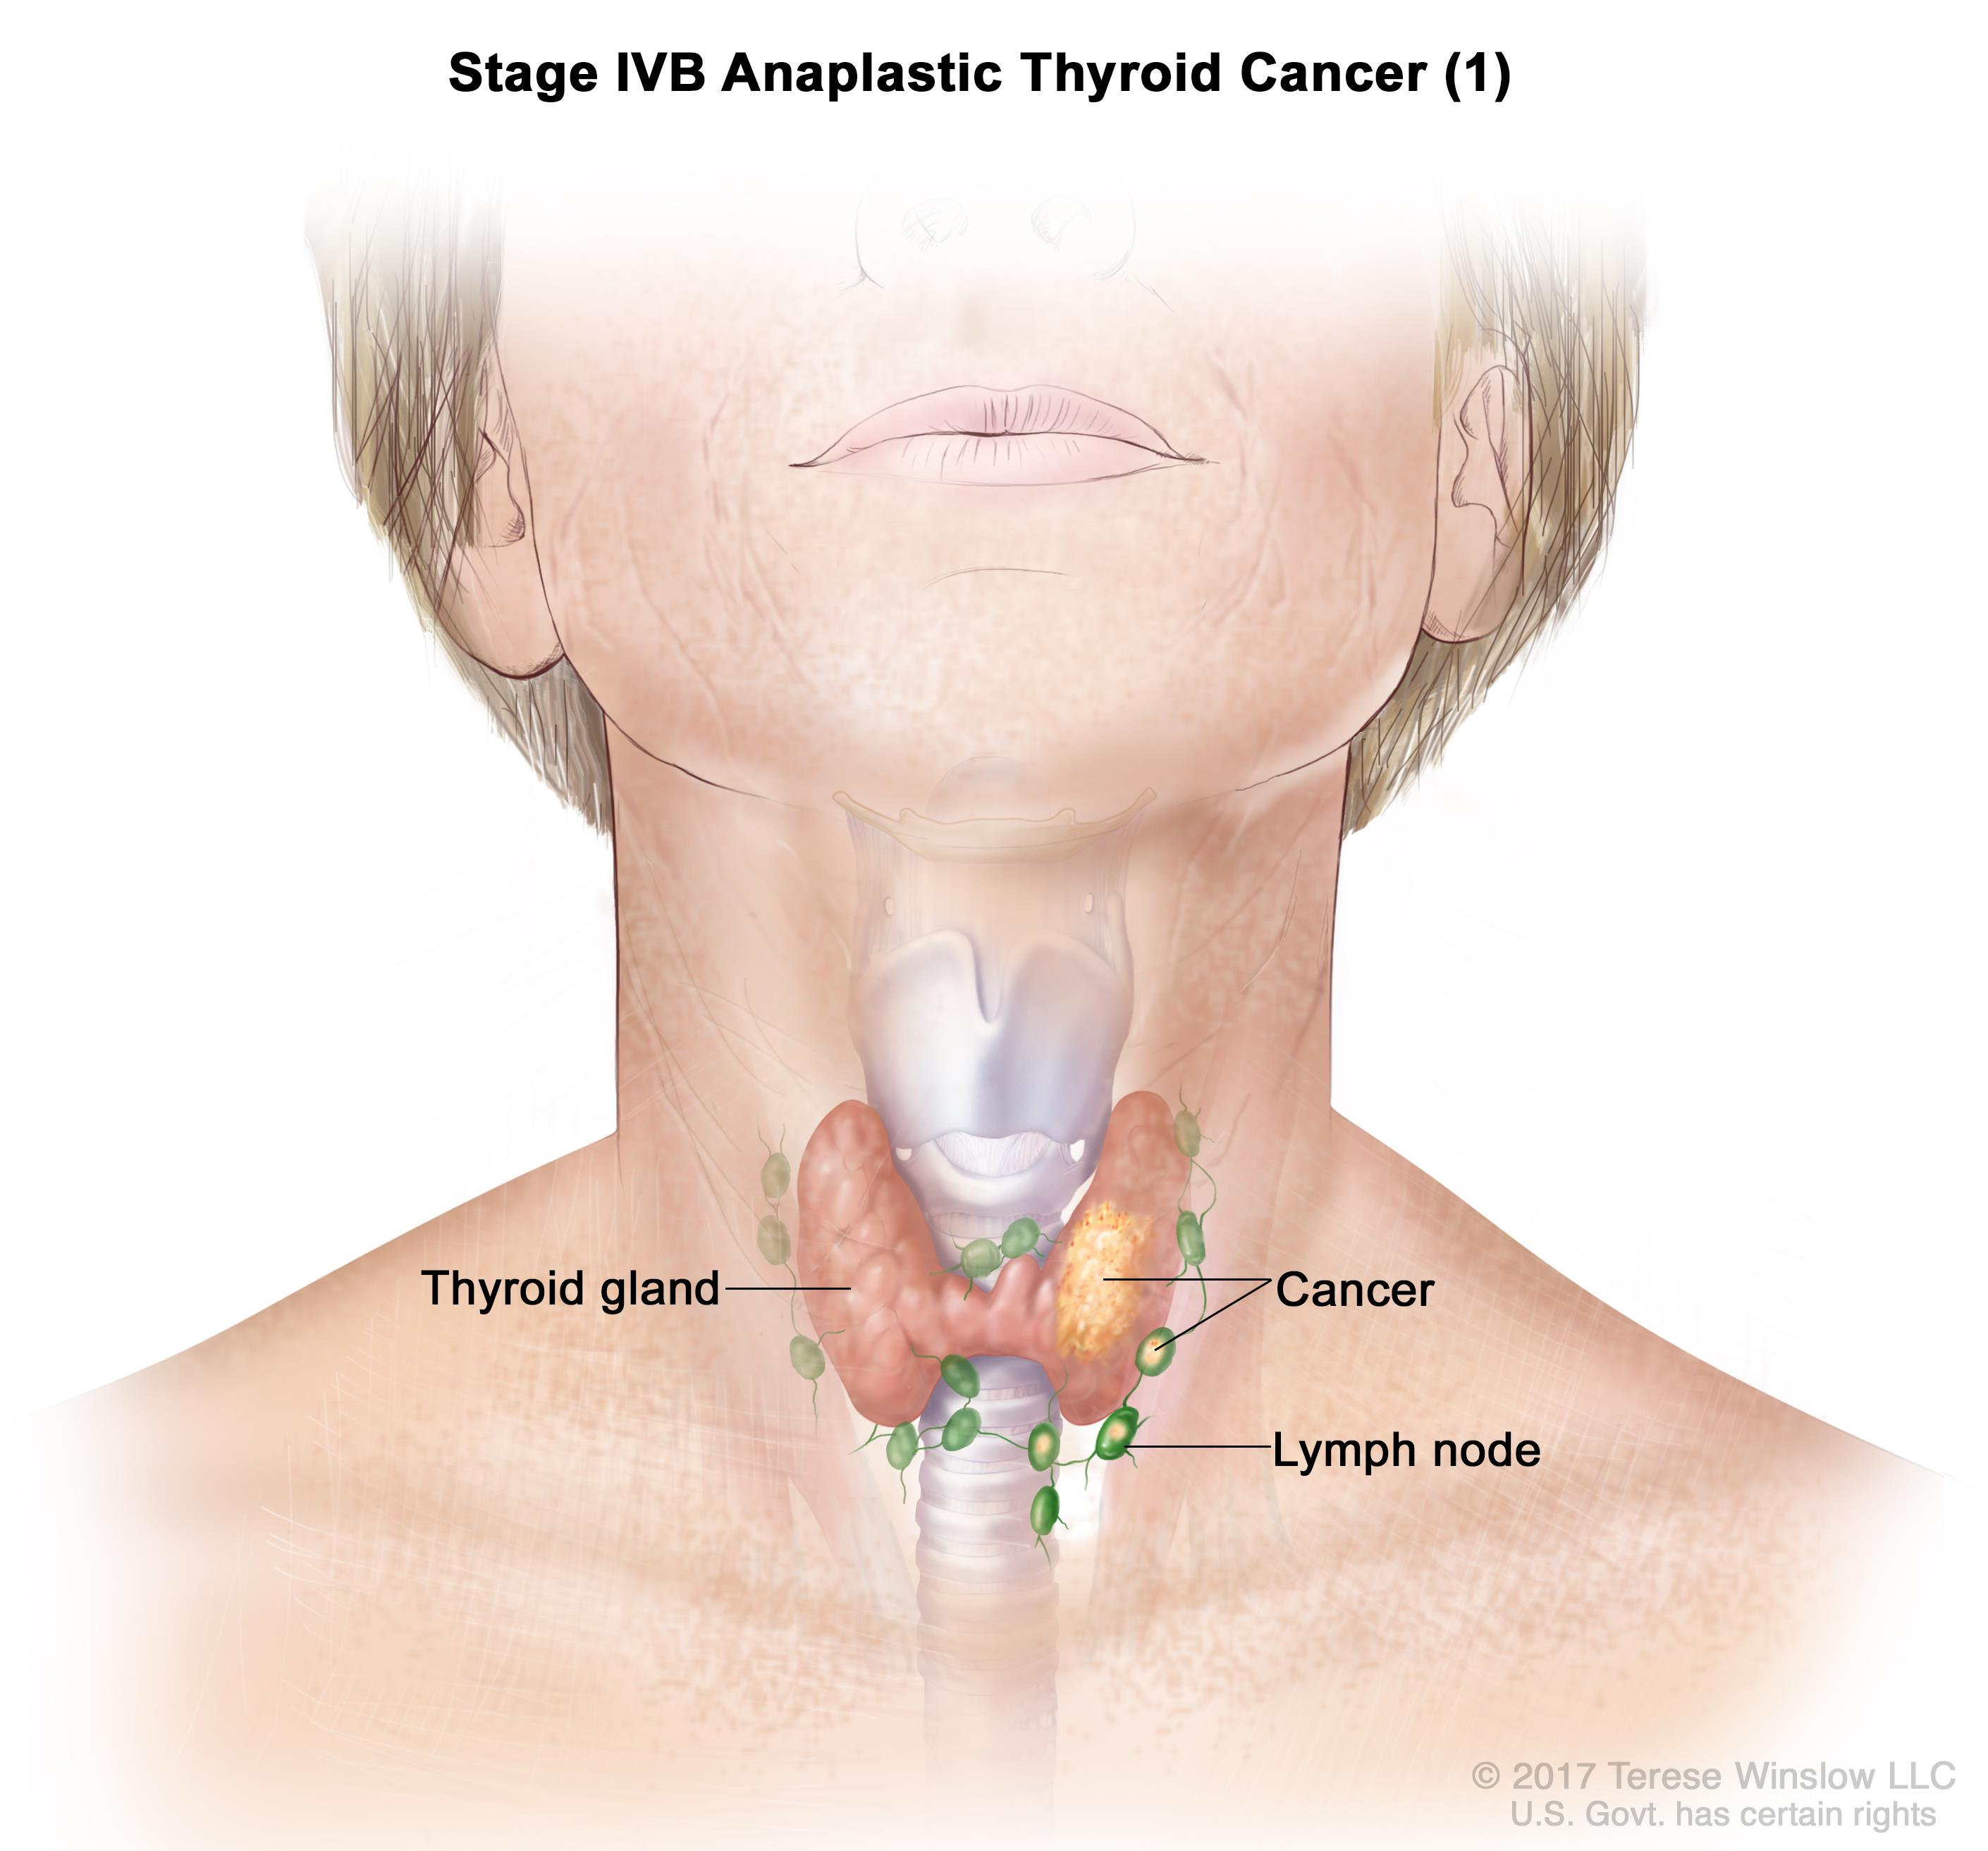 Stage IVB anaplastic thyroid cancer; drawing shows cancer that has spread to tissue just outside the thyroid gland. The lymph nodes are also shown.